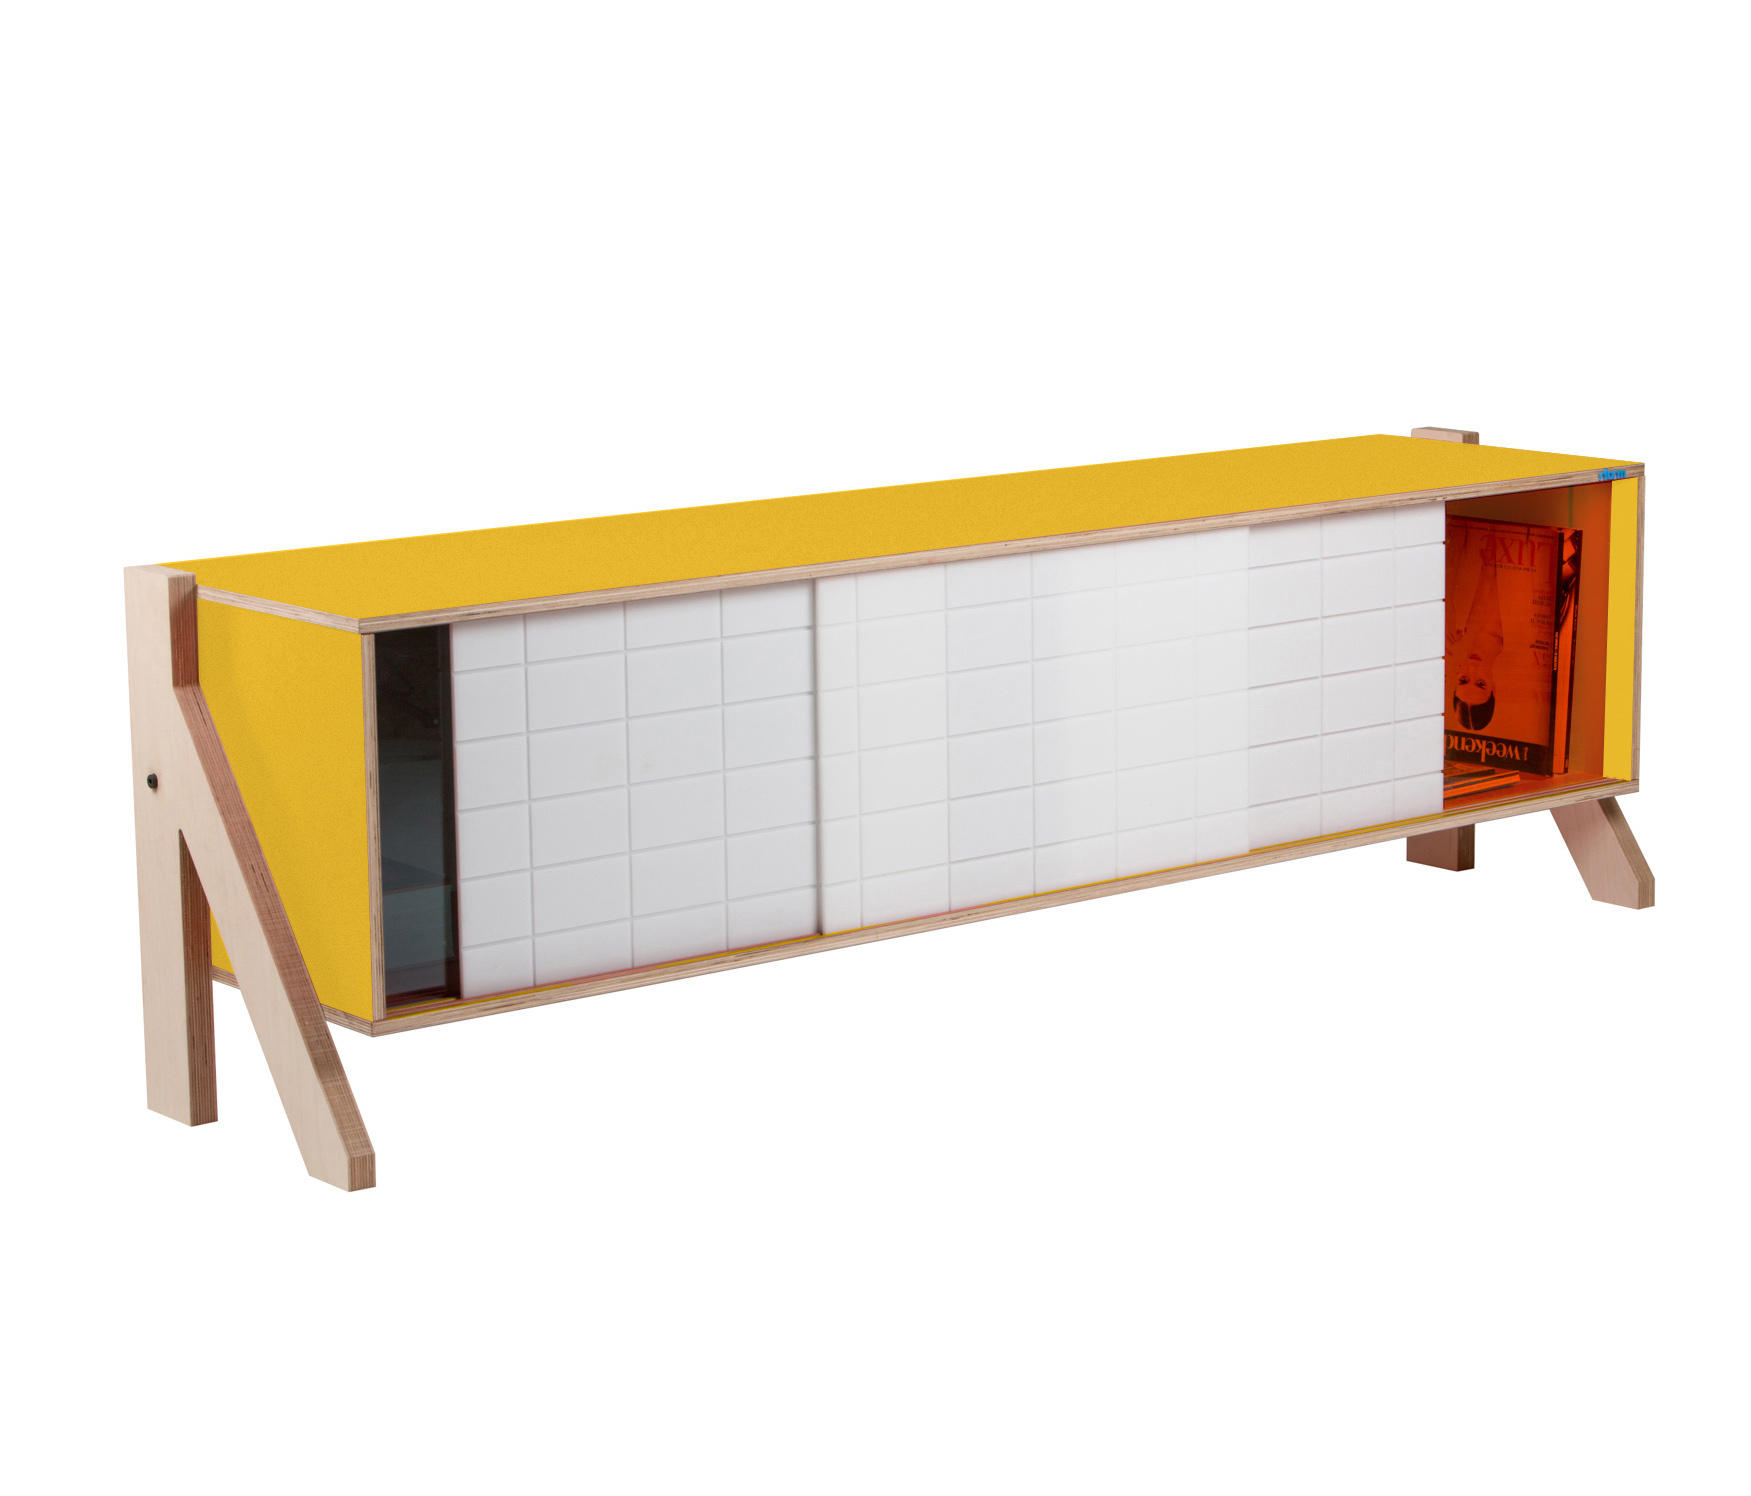 FRAME SIDEBOARD 01 MID - Sideboards from rform | Architonic